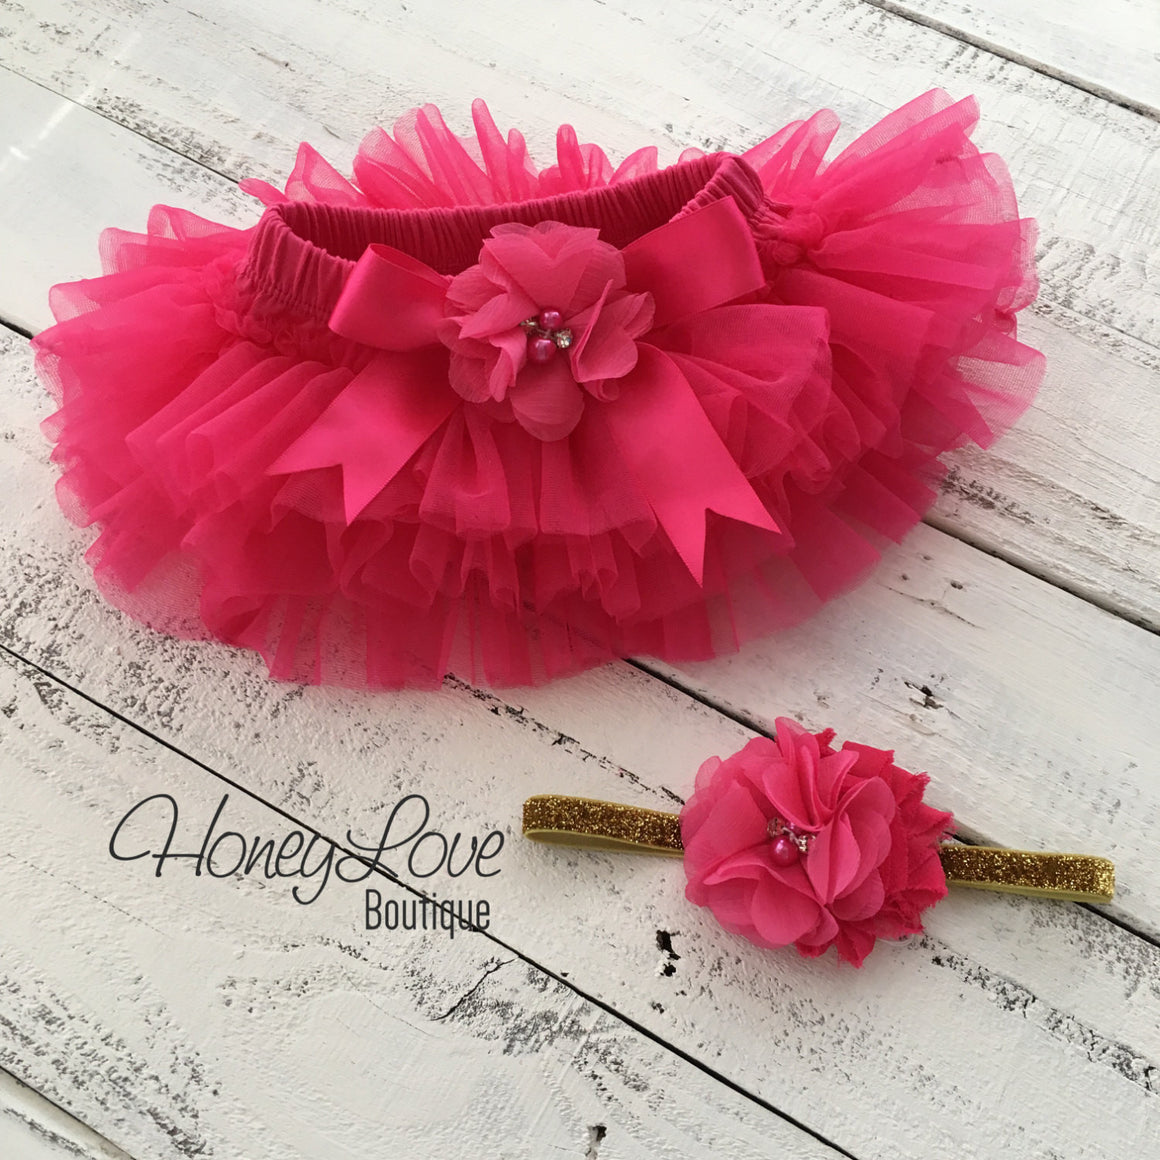 Watermelon Pink tutu skirt bloomers and gold glitter headband - embellished bloomer